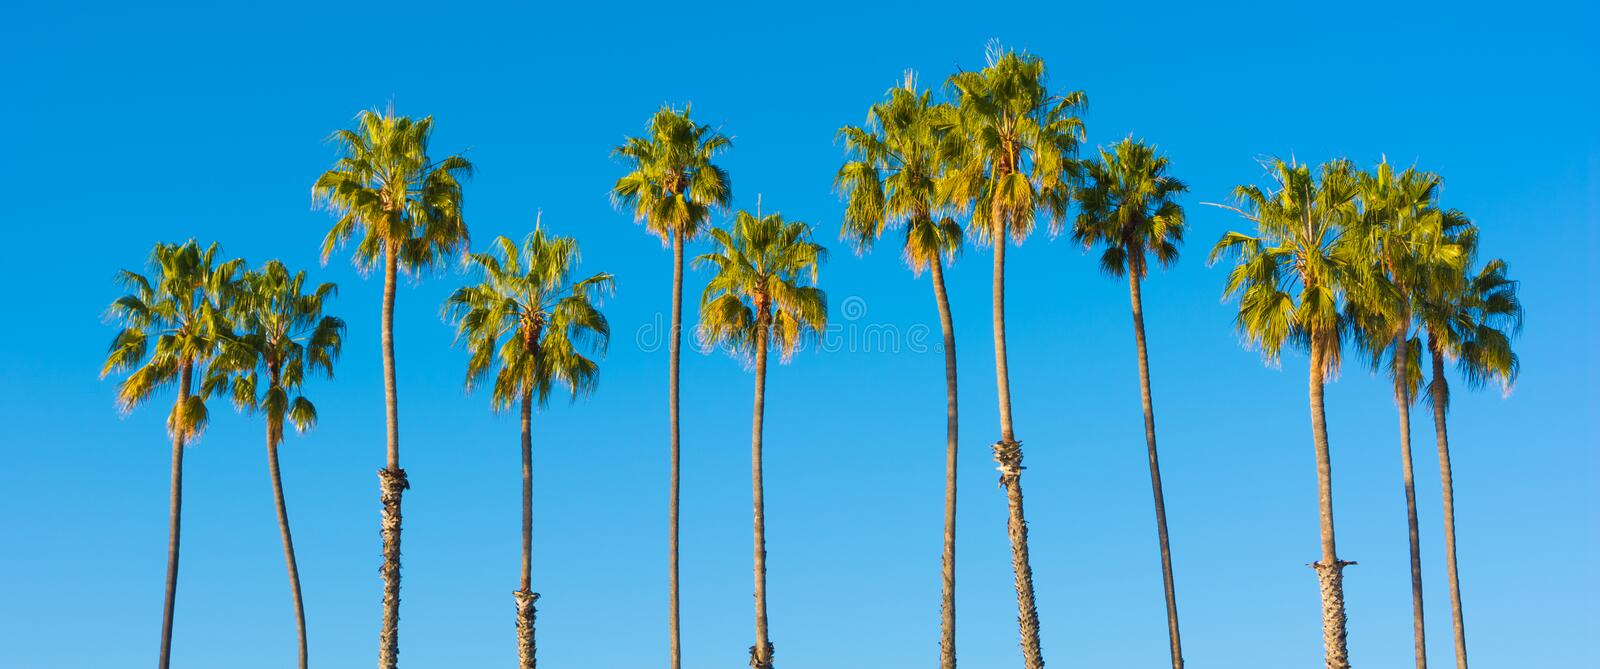 Download A Row Of Palm Trees With A Sky Blue Background Stock Photo - Image of sunshine, leaf: 39506516